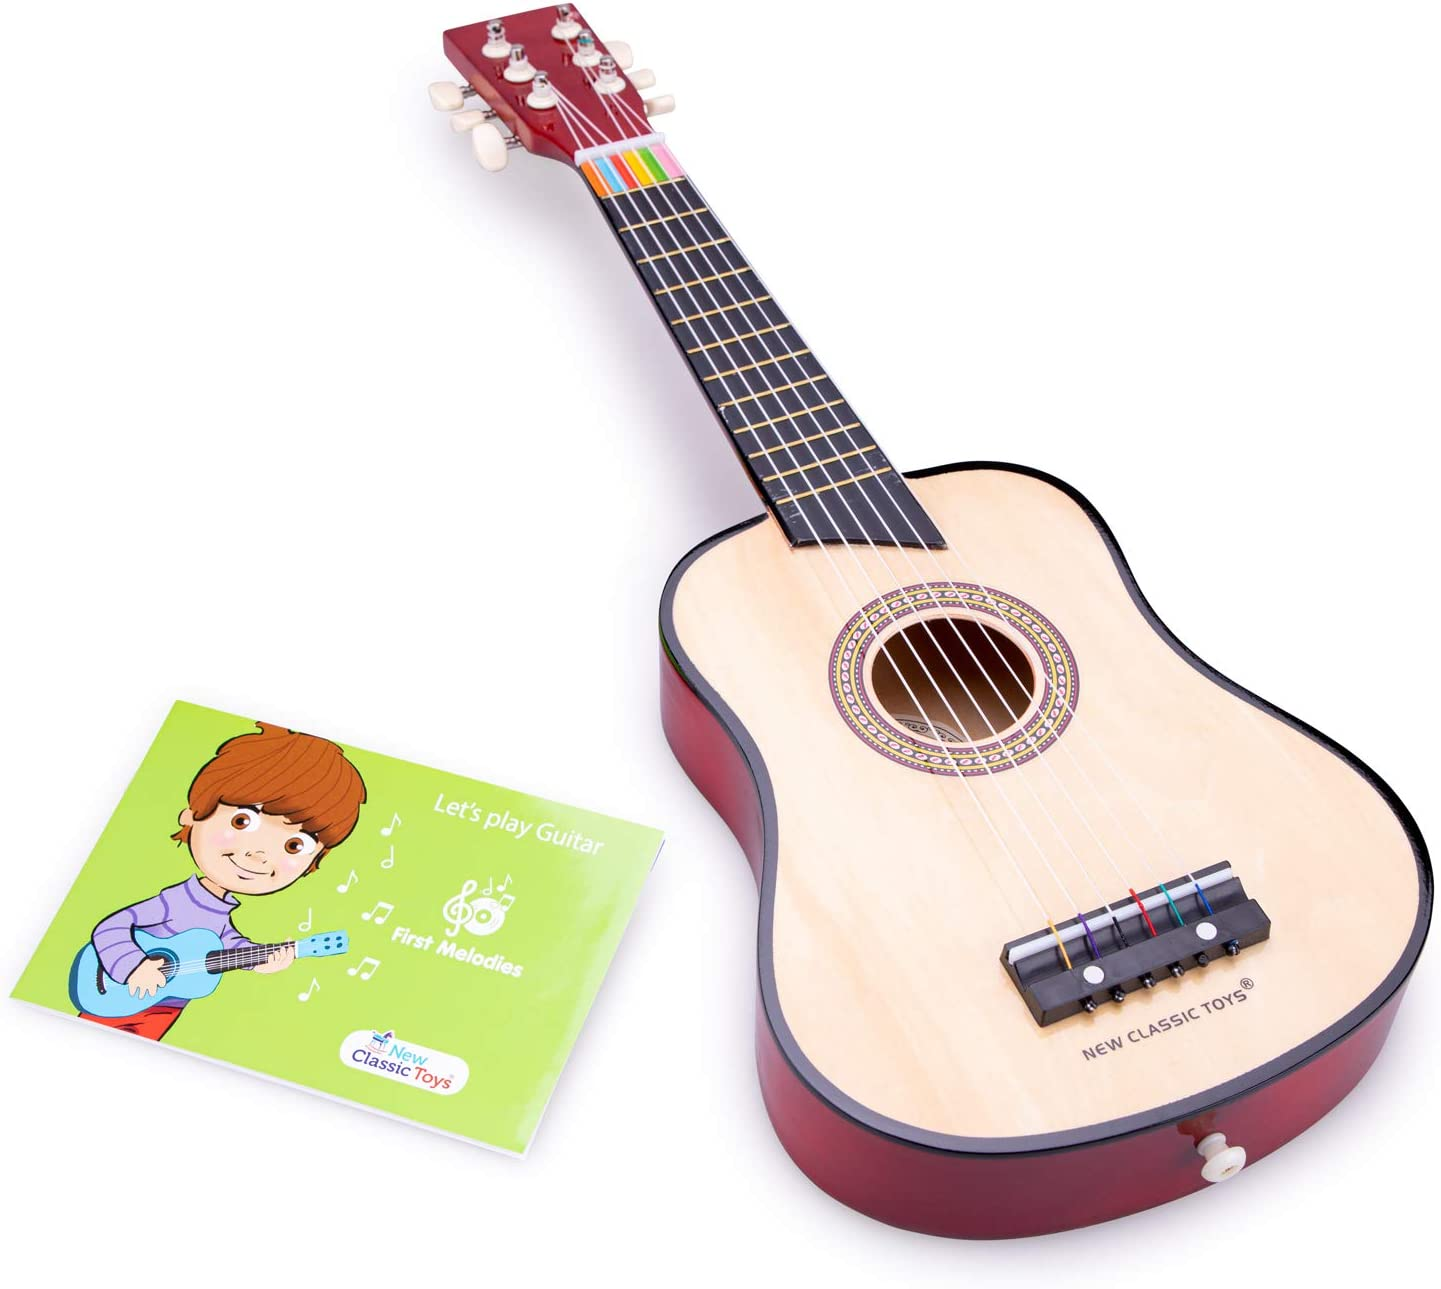 New Classic Toys Toys-10304 Guitarra para niños, Color marrón, 3-5 ...